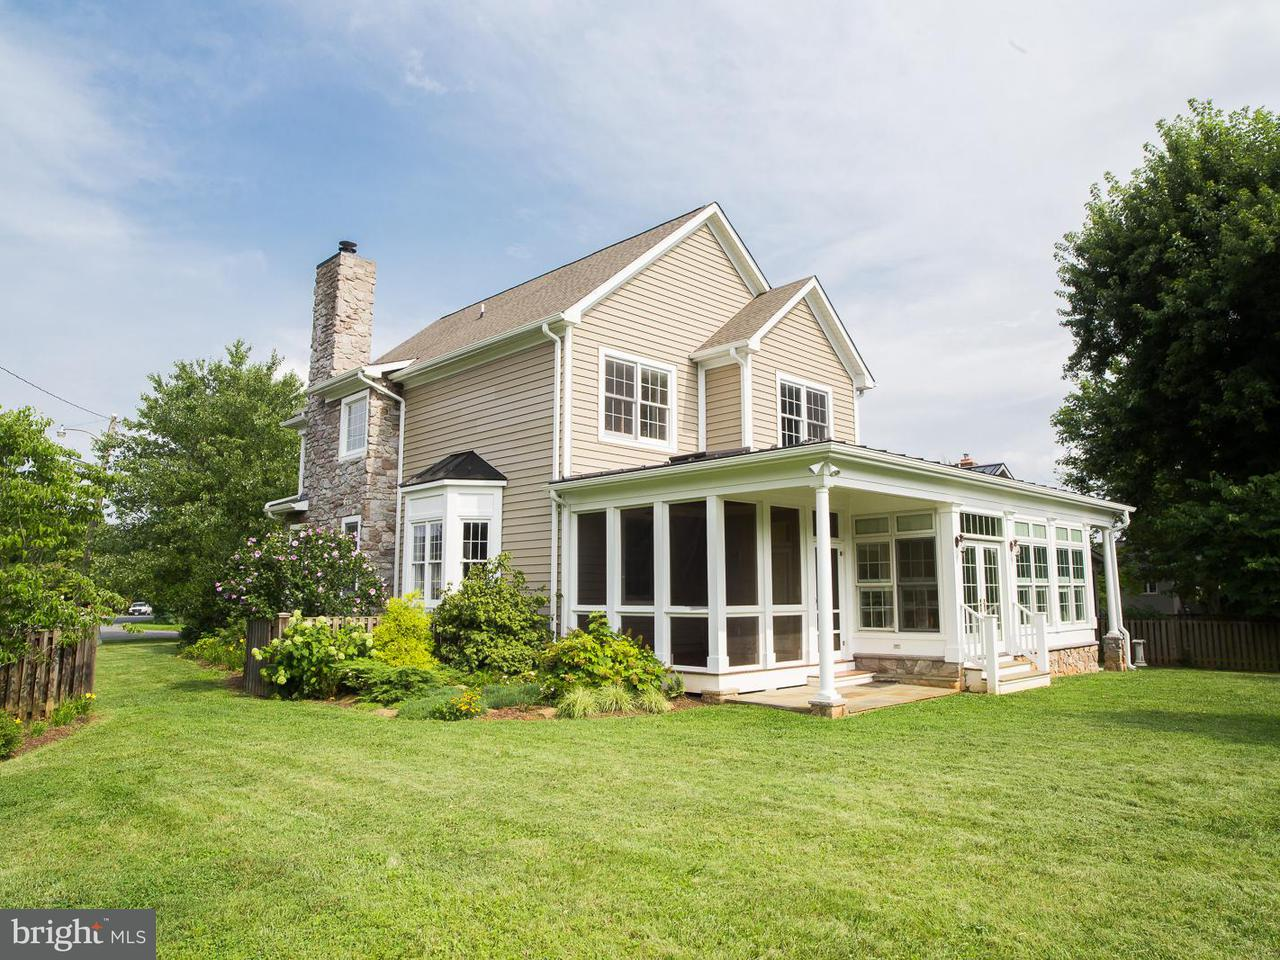 Single Family for Sale at 208 Locust St Middleburg, Virginia 20117 United States